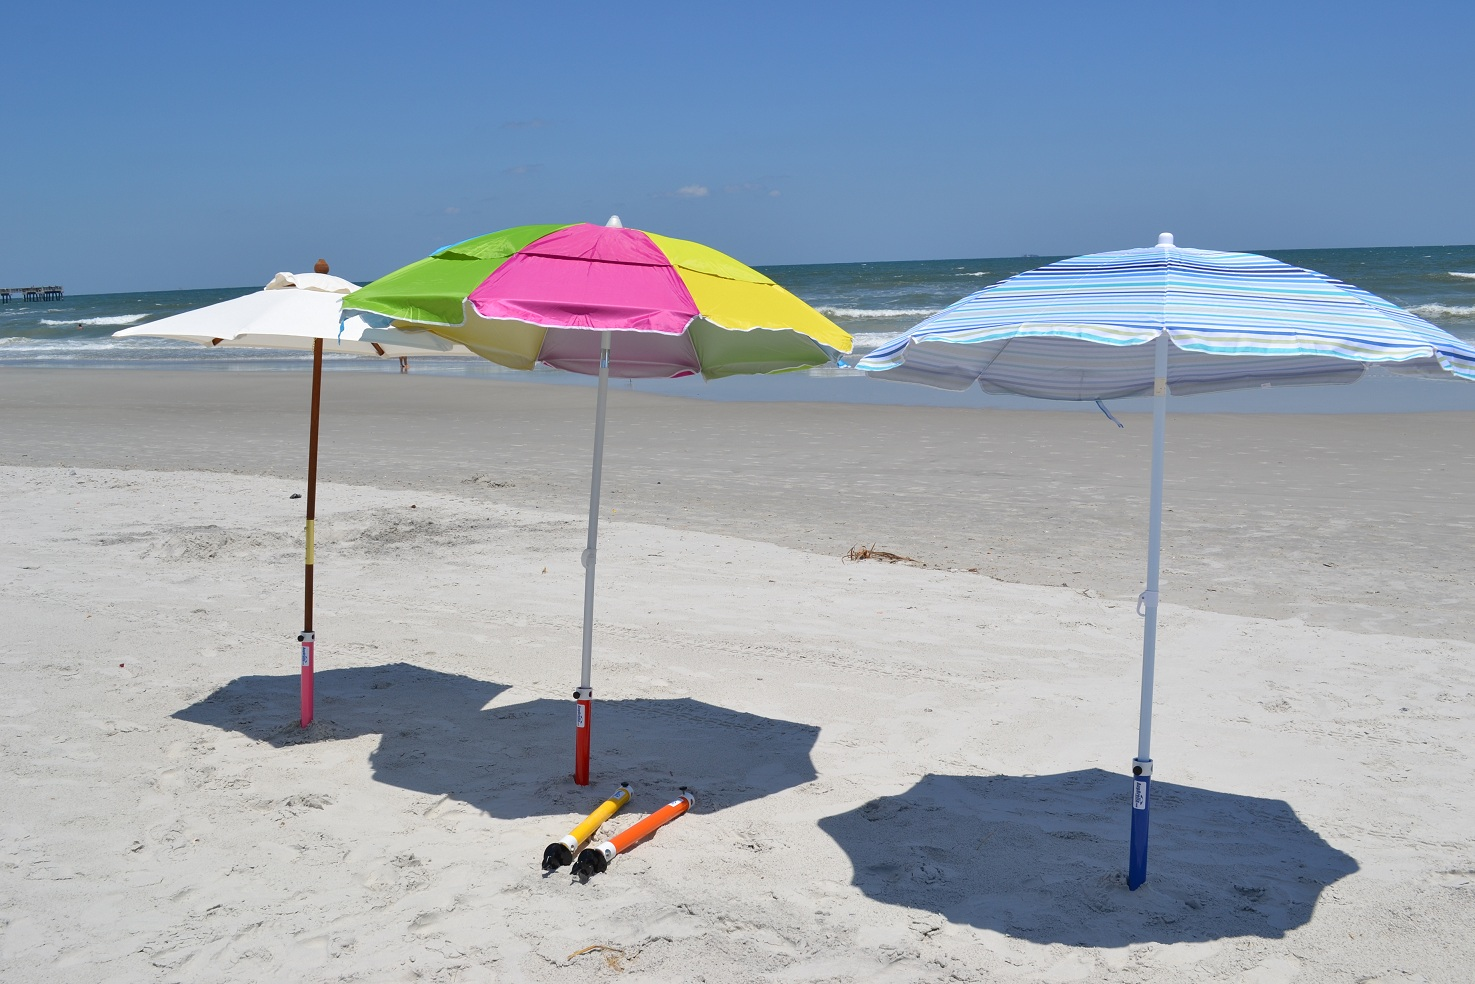 Myrtle Beach Bans Canopy Tents Stay Shaded Get An Umbrella